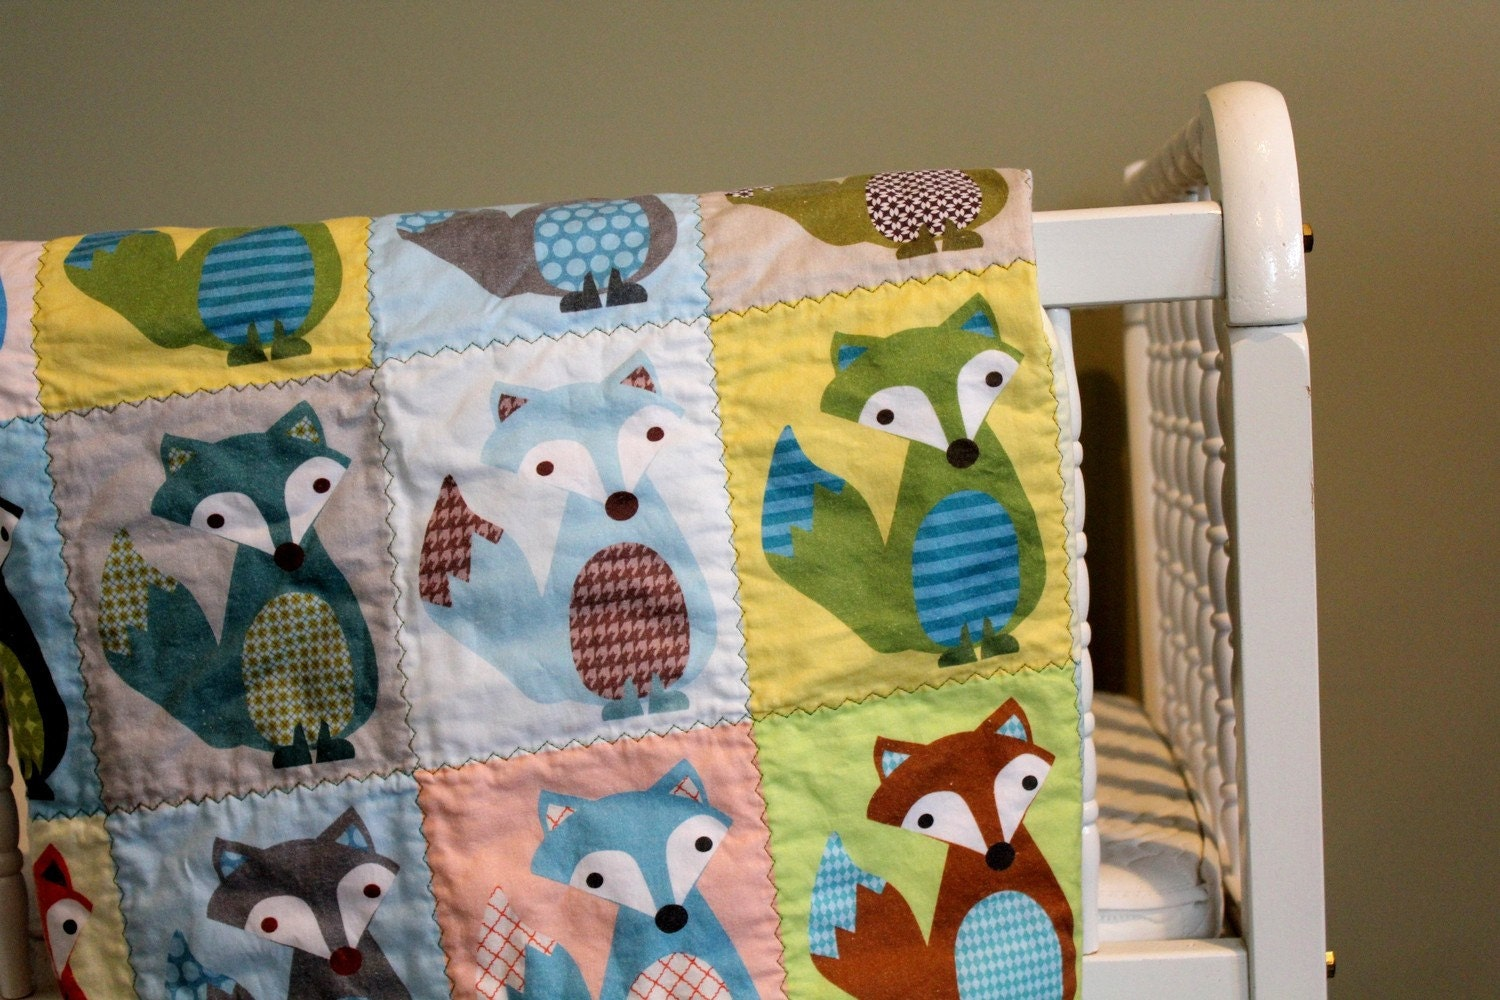 Fox tails quilt by petunias baby blanket newborn by petunias - Vintage antique baby room ideas timeless charm appeal ...